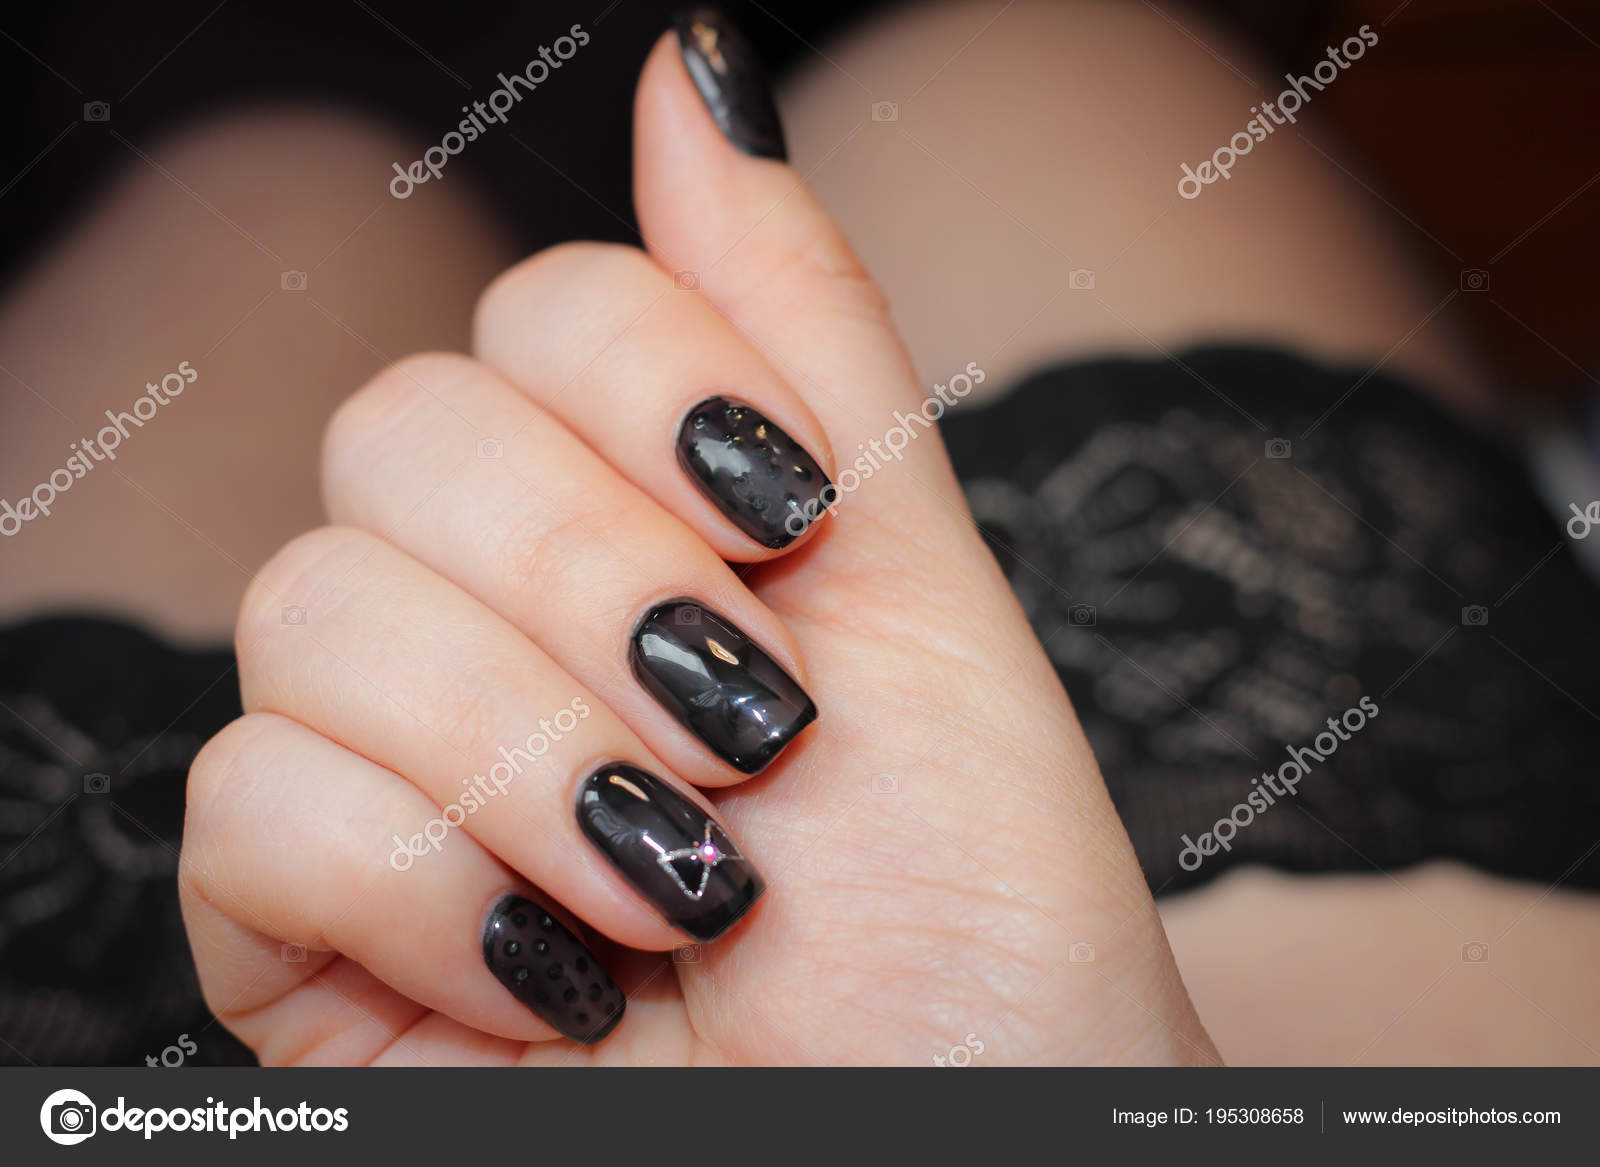 Designer Nails In Tone Stockings Stock Photo Bagira262626 195308658